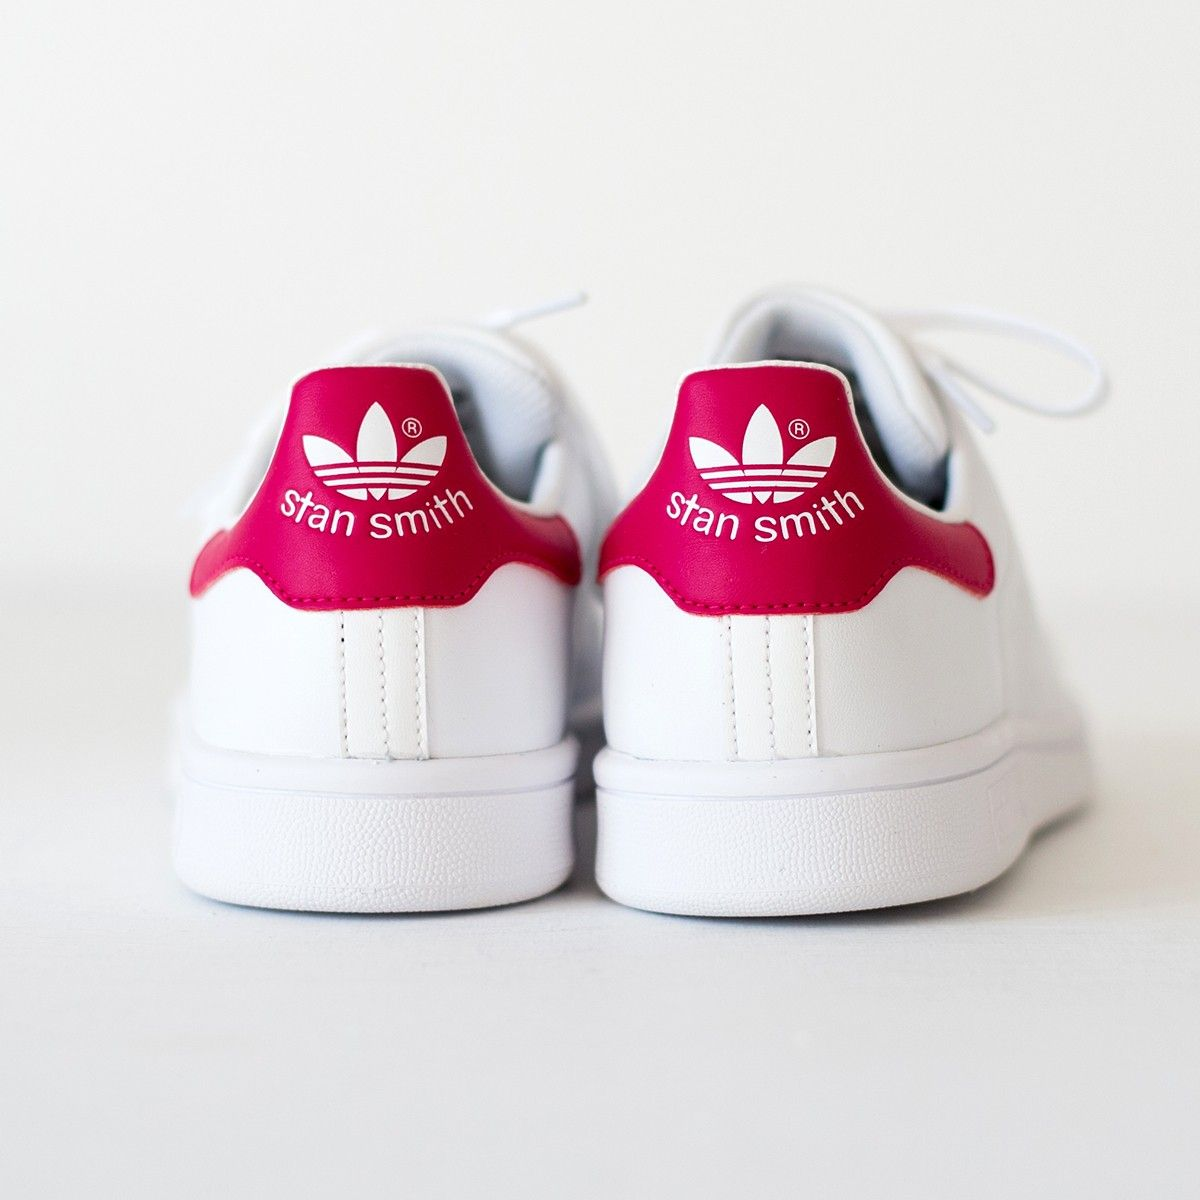 stan smith adidas pink white